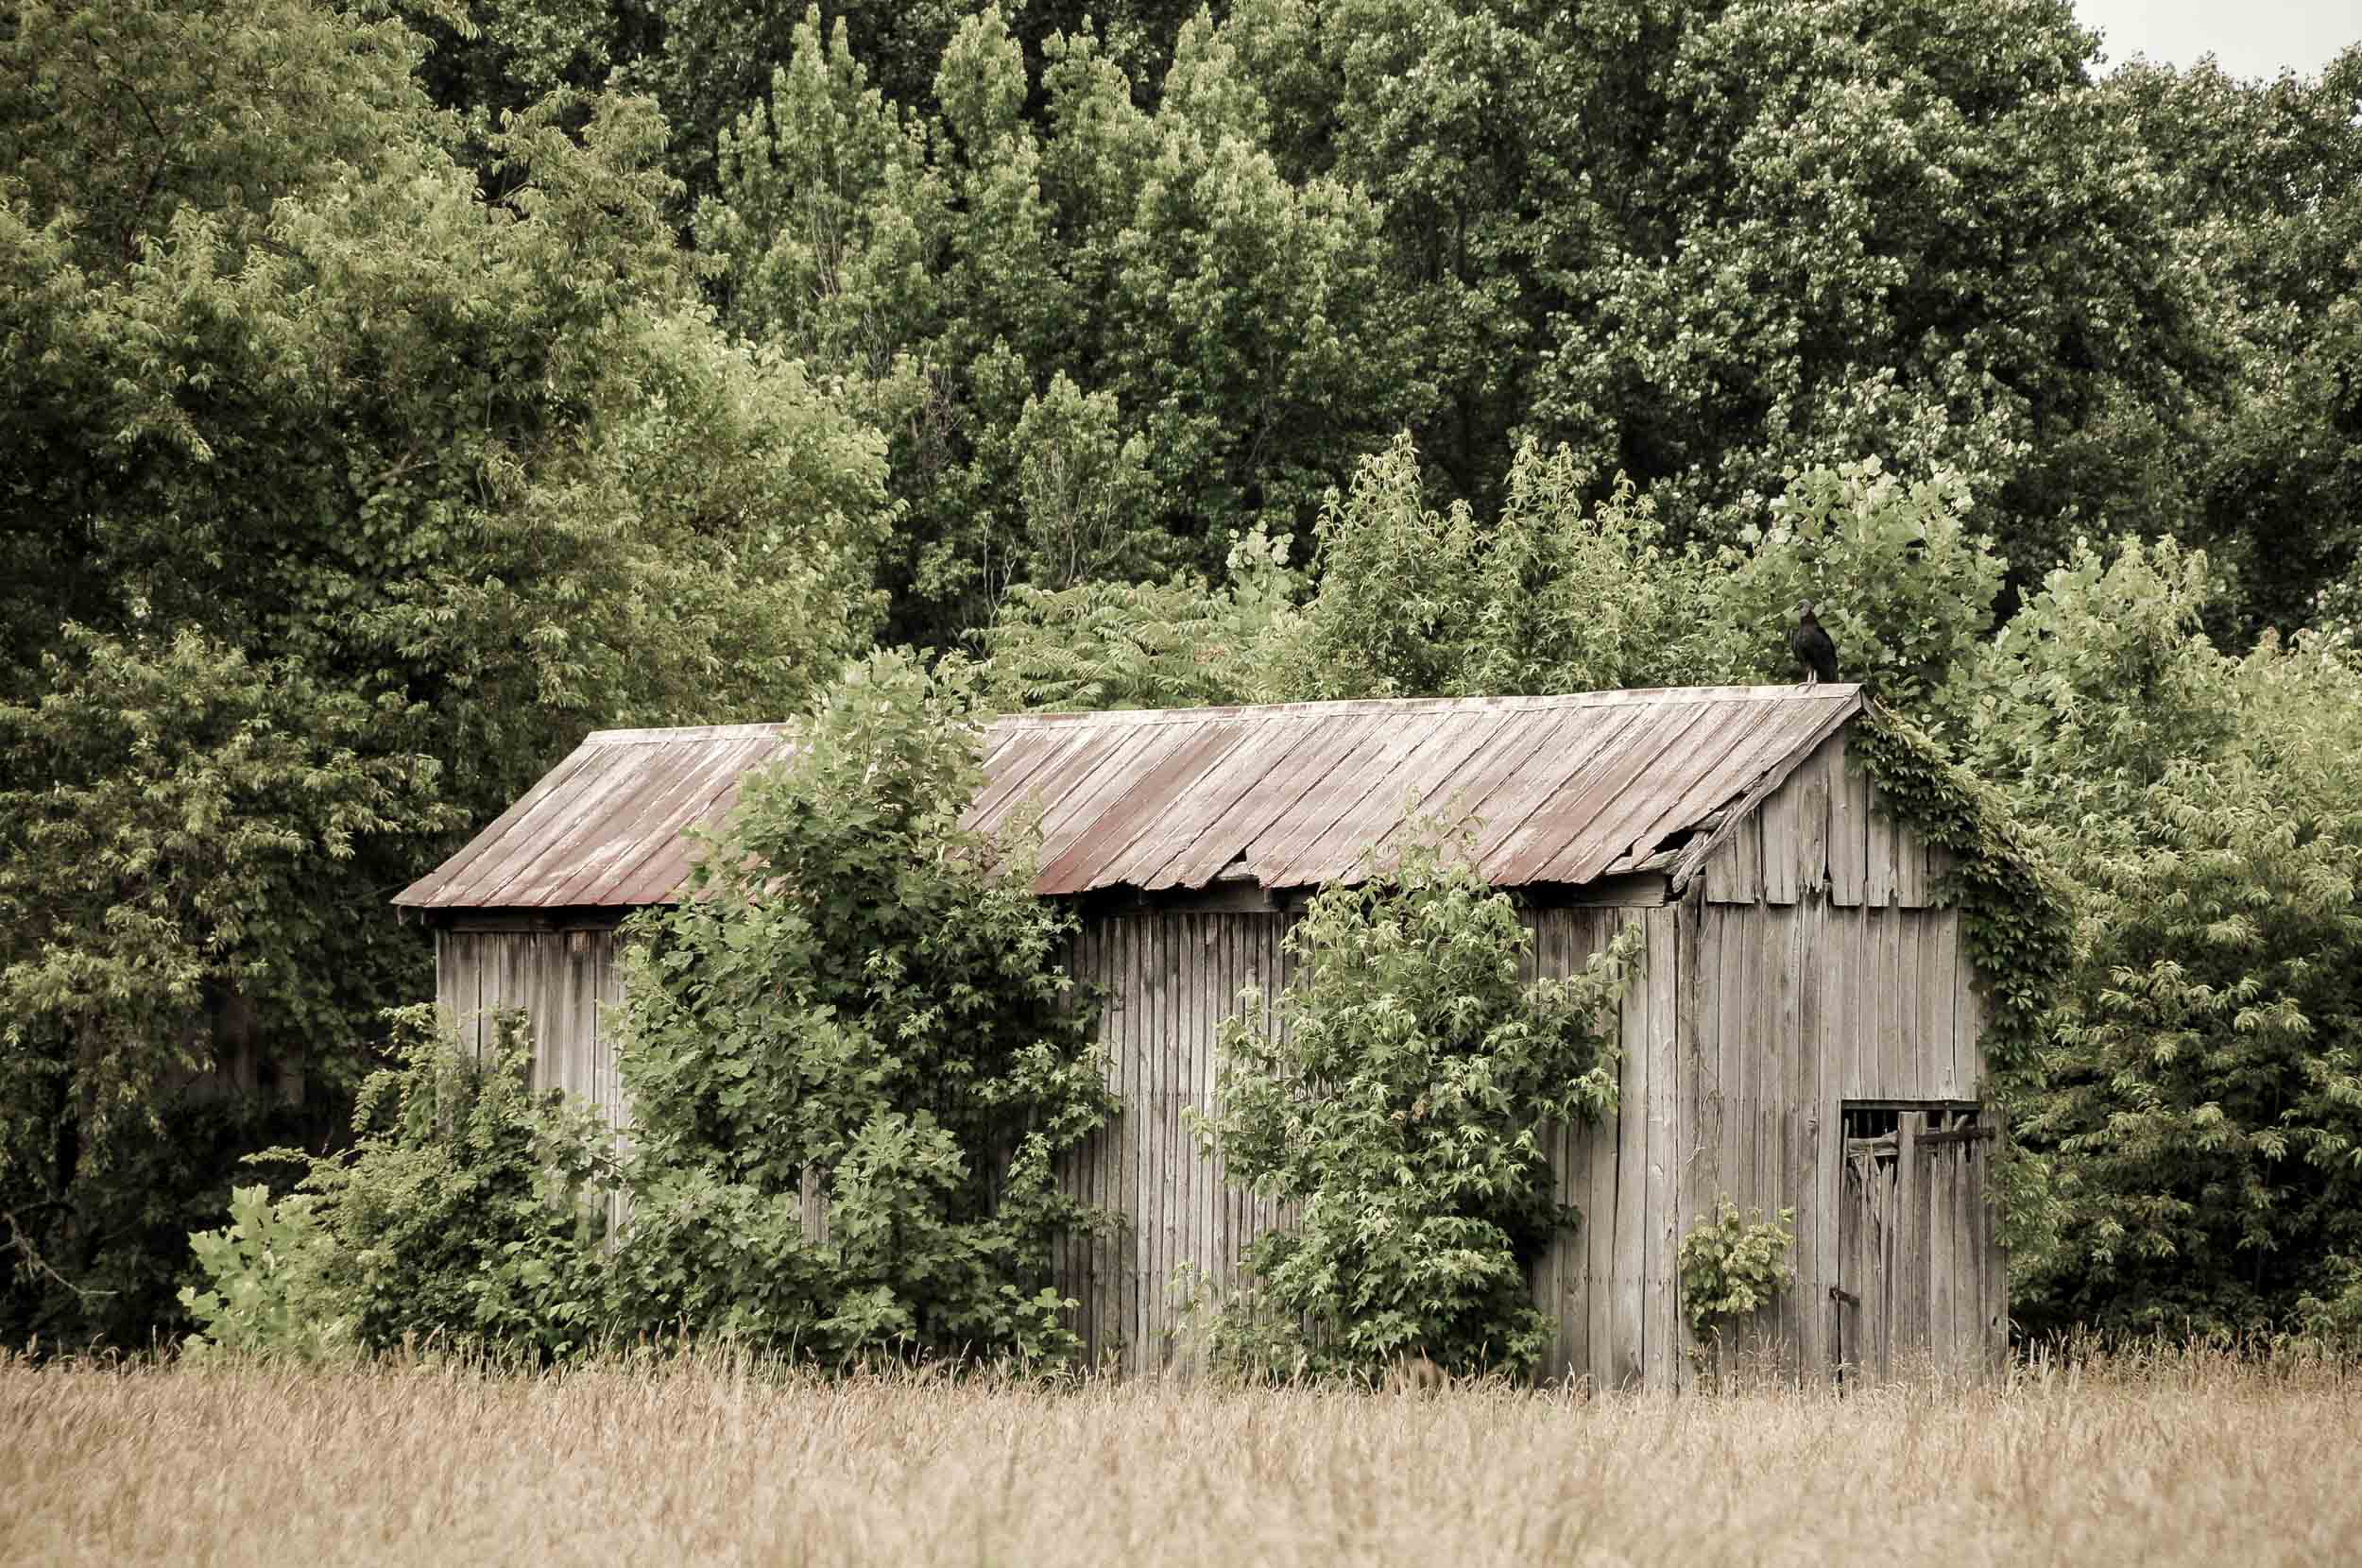 Old Barn Near Mount Calvert Plantation  Photo: Rose Anderson, June 2018